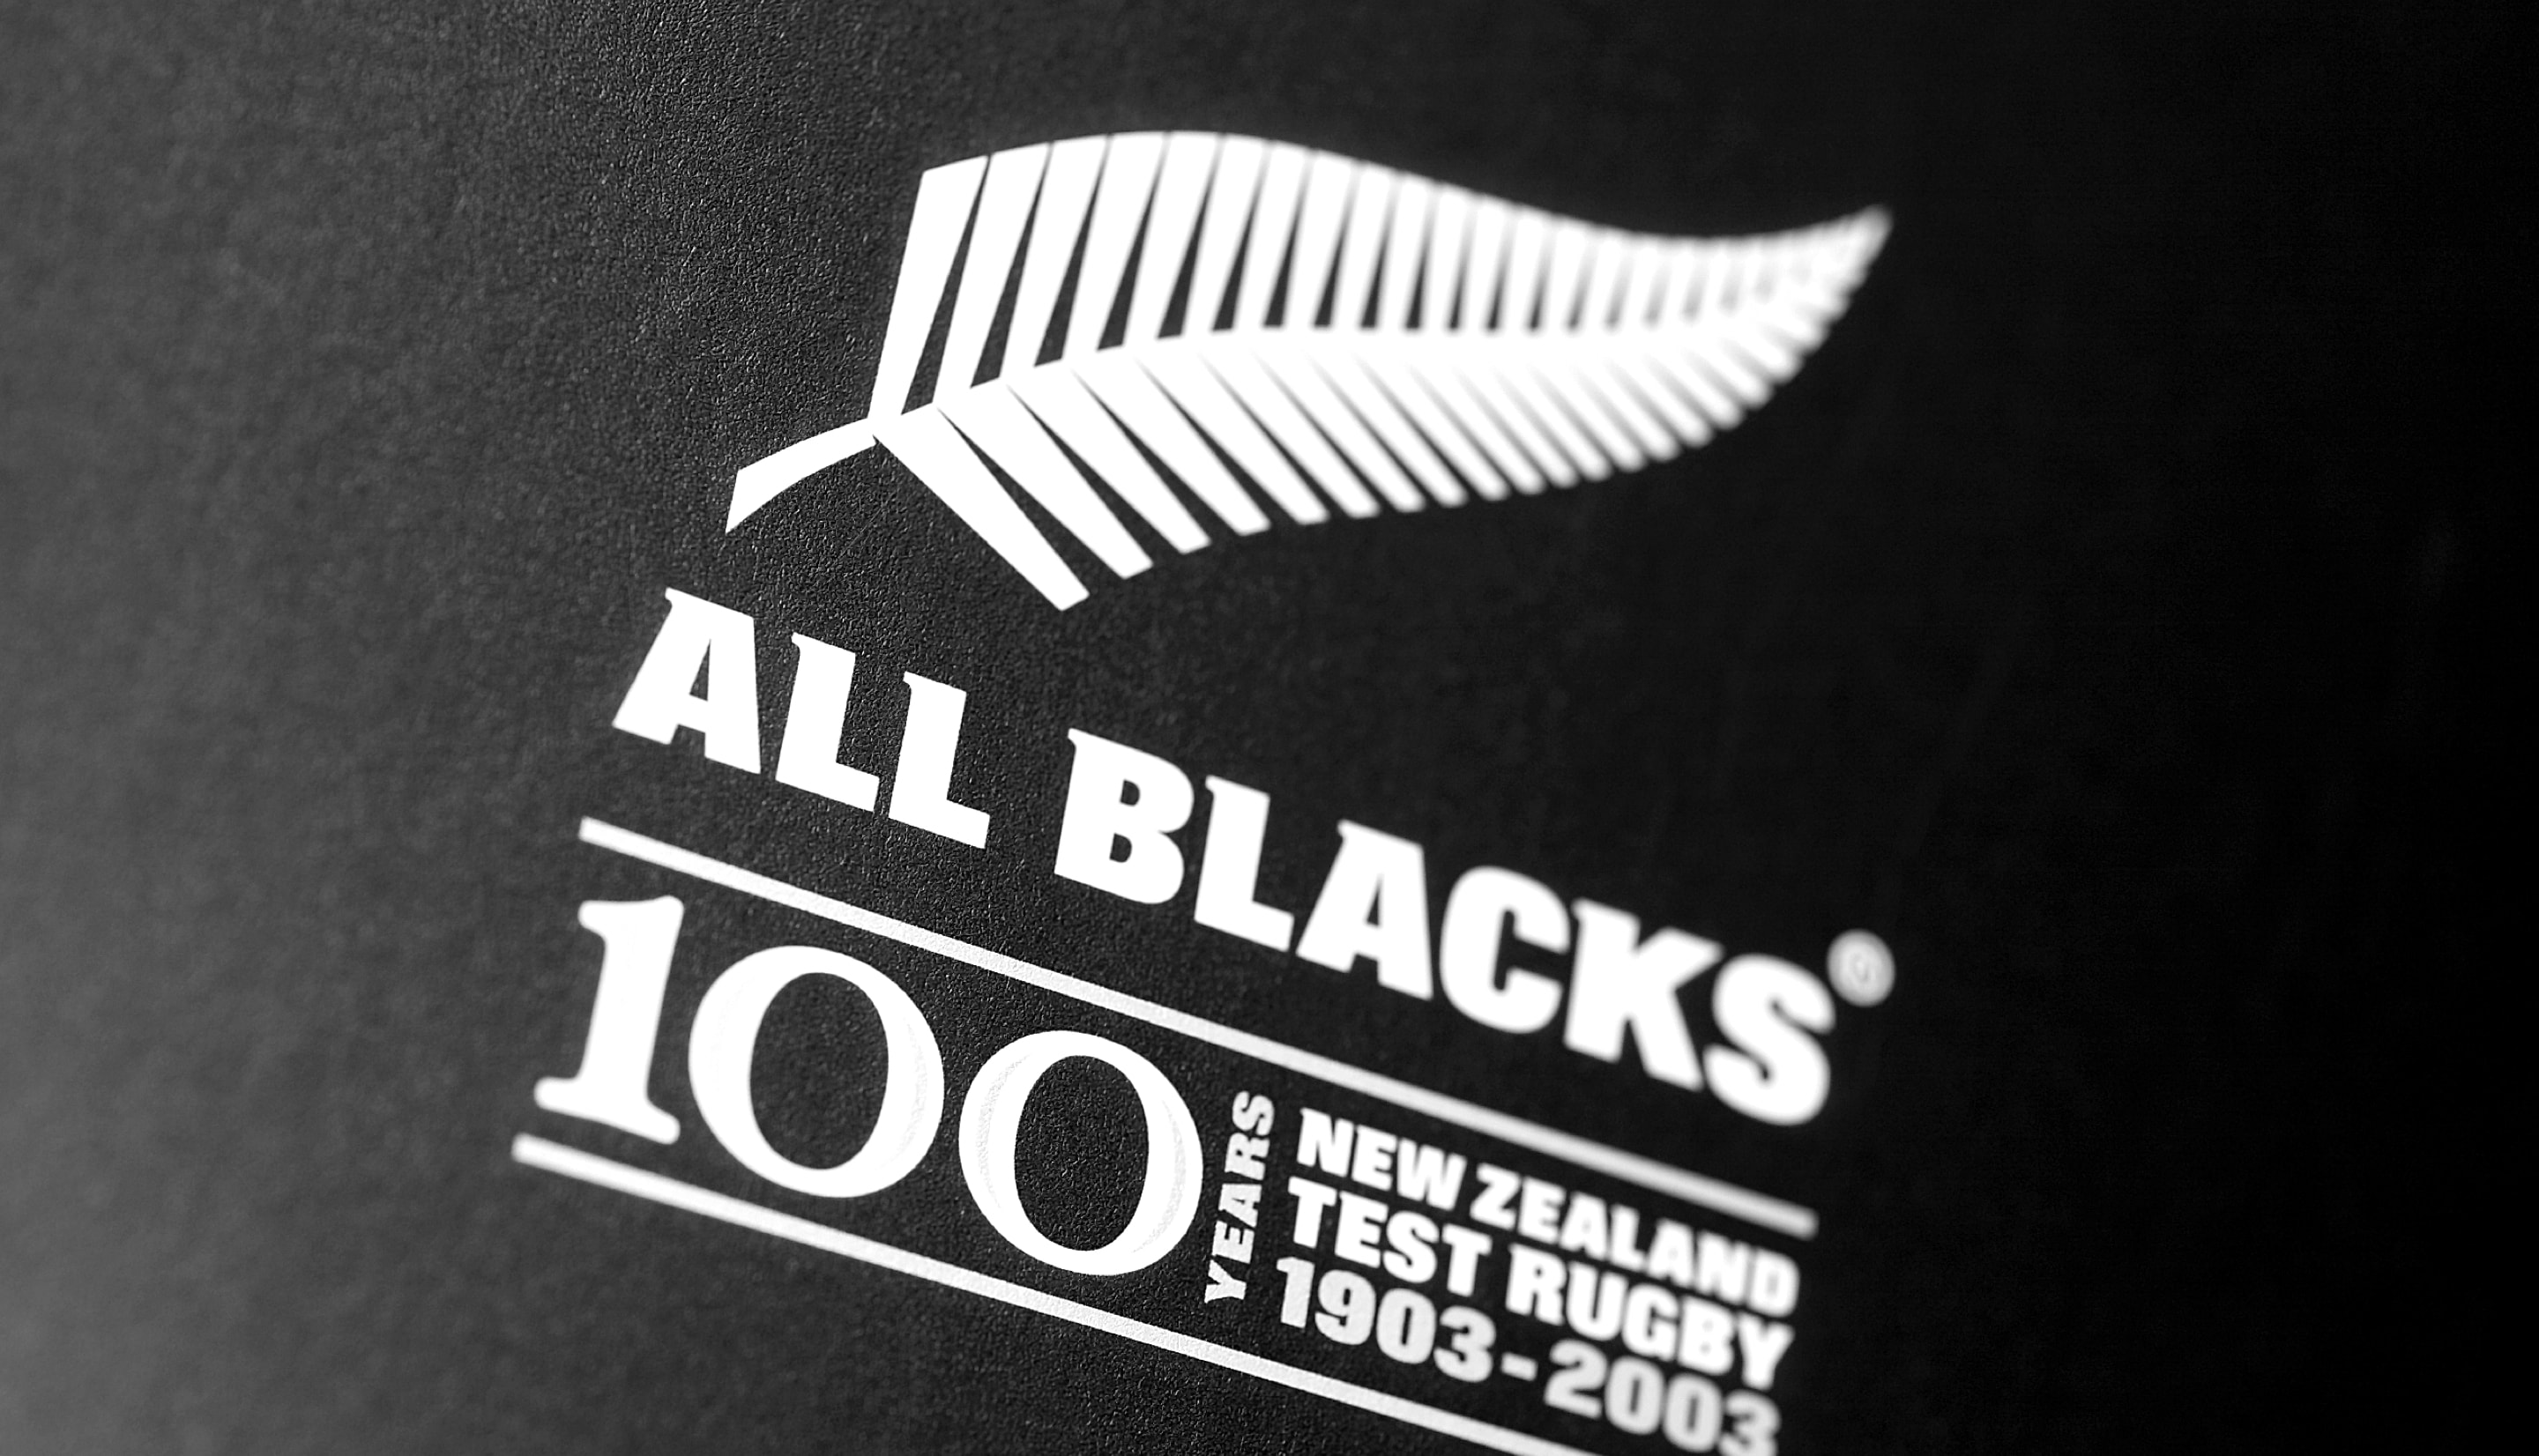 All Blacks 100 years